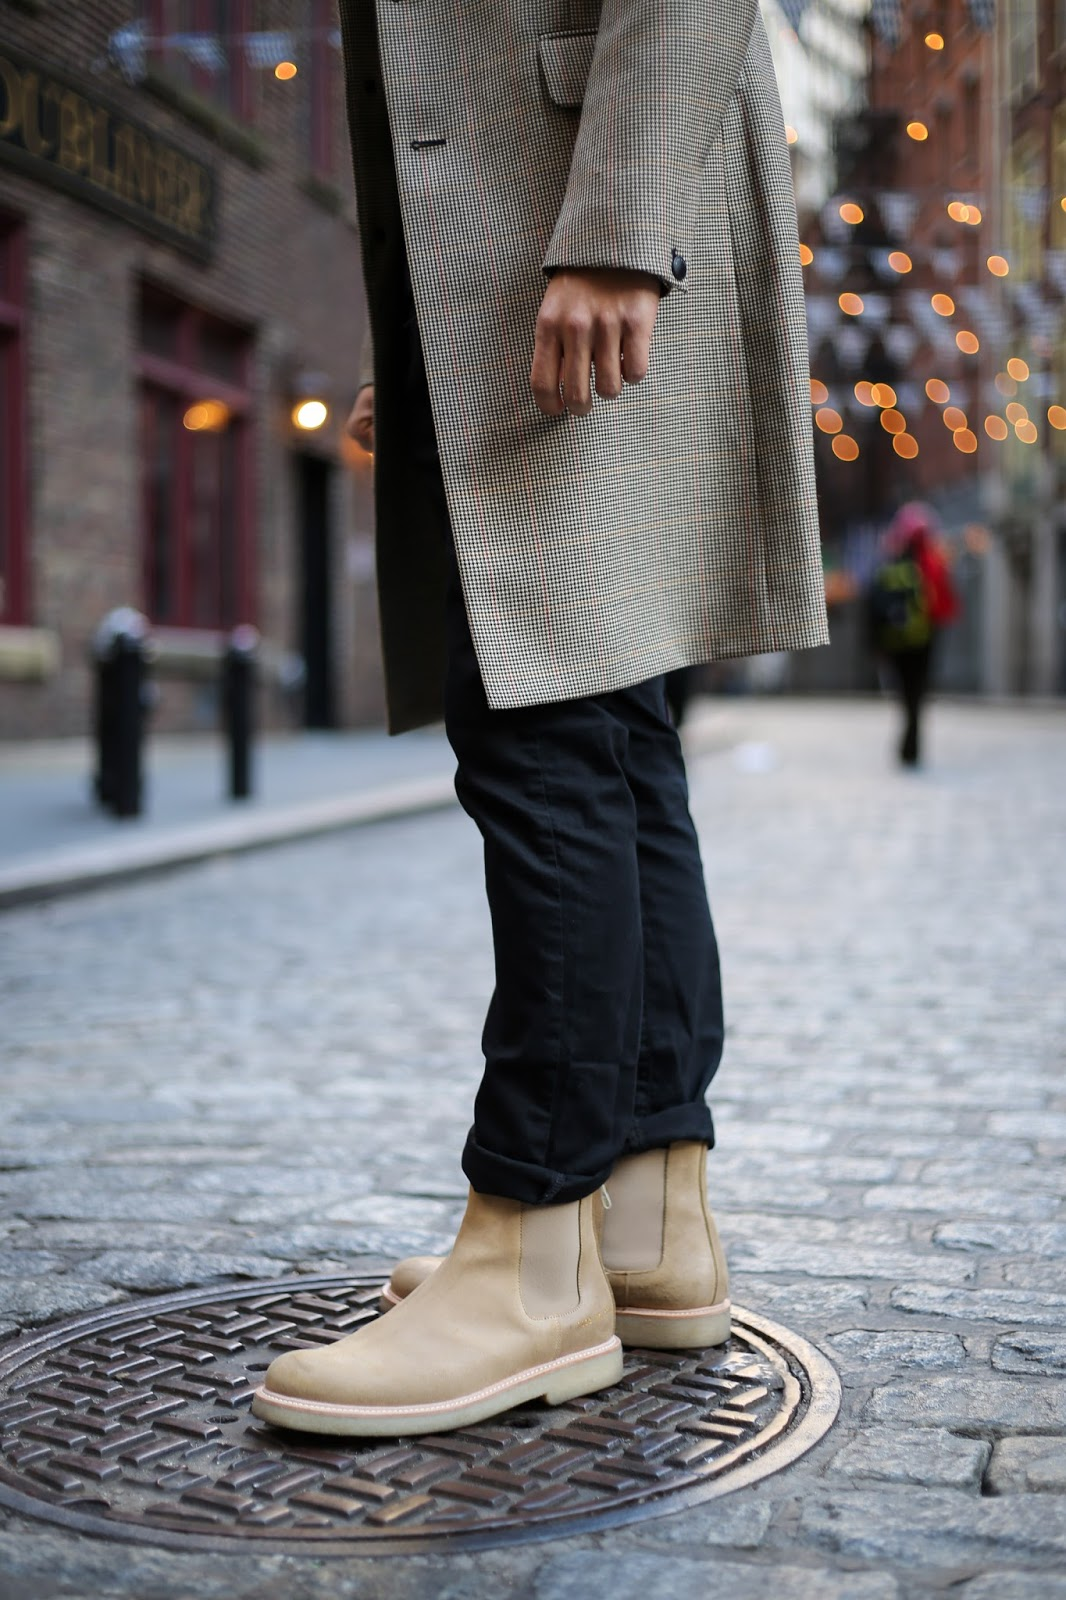 Levitate Style, menswear blogger, wearing Commons Projects Chelsea Boots